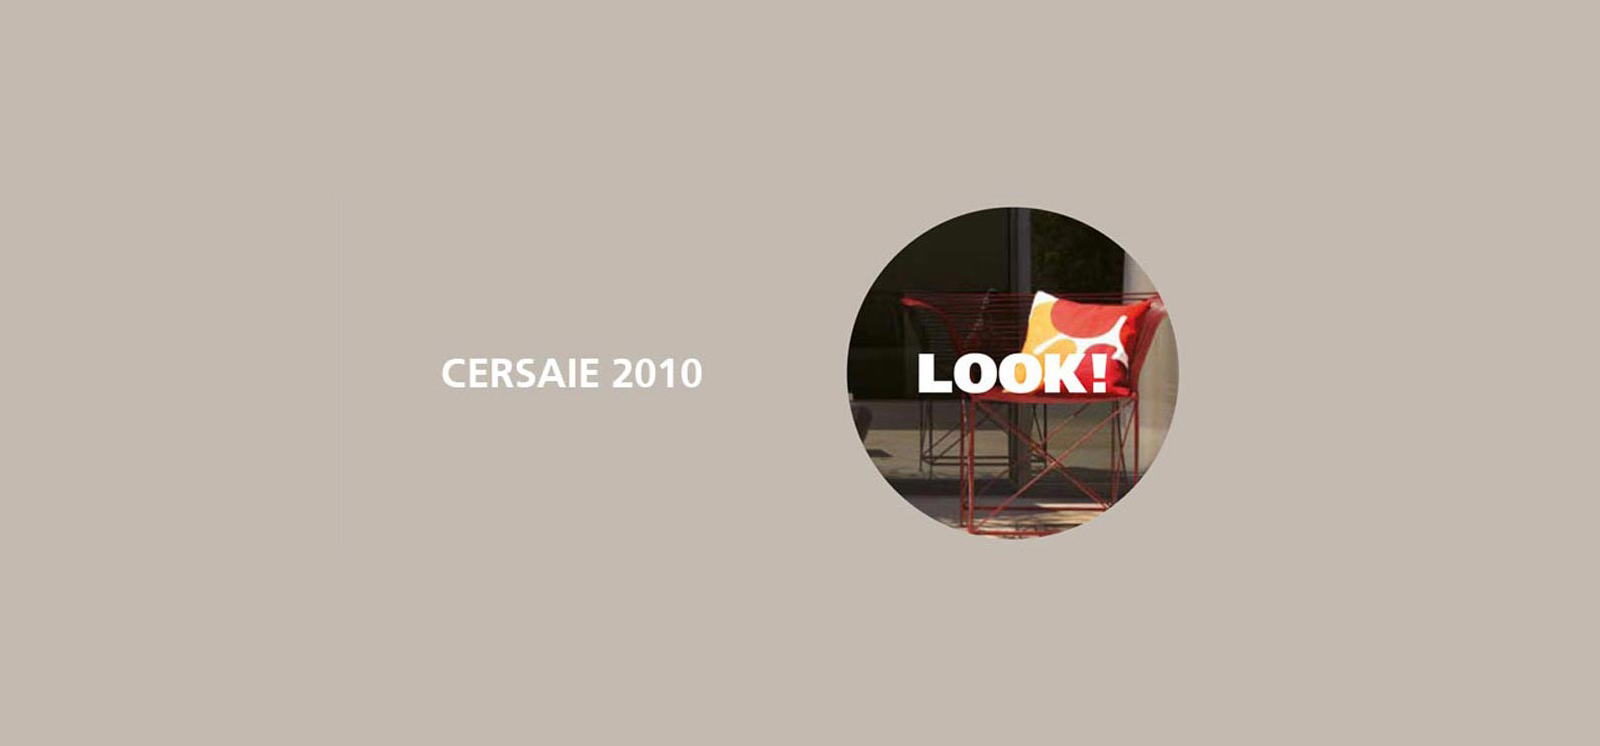 Cersaie 2010 - 28th September / 2nd October 2010